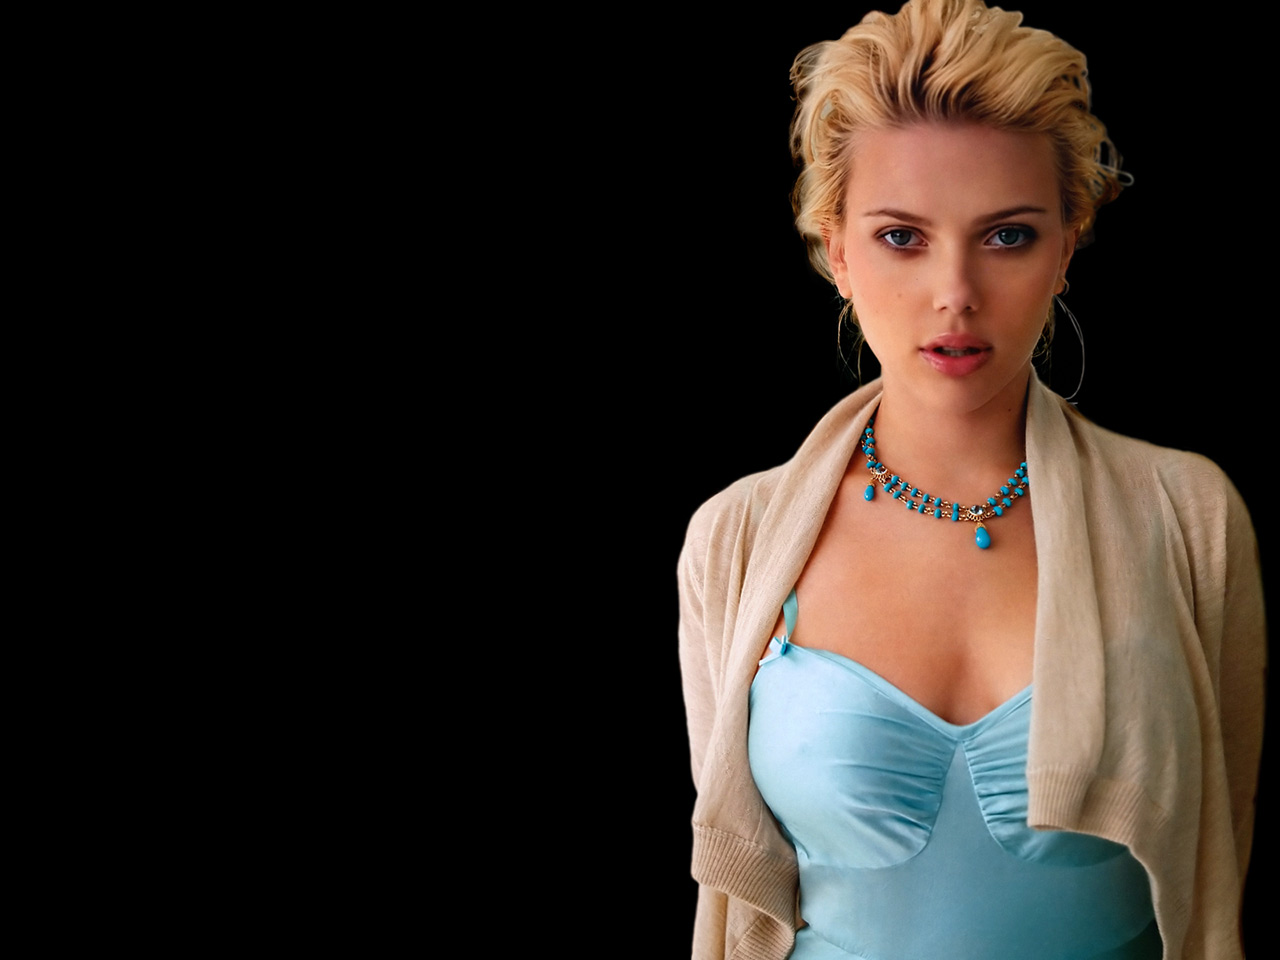 Scarlett Johansson Wallpaper: Kali Wallpaper: Scarlett Johansson 2012 Latest HD Wallpapers